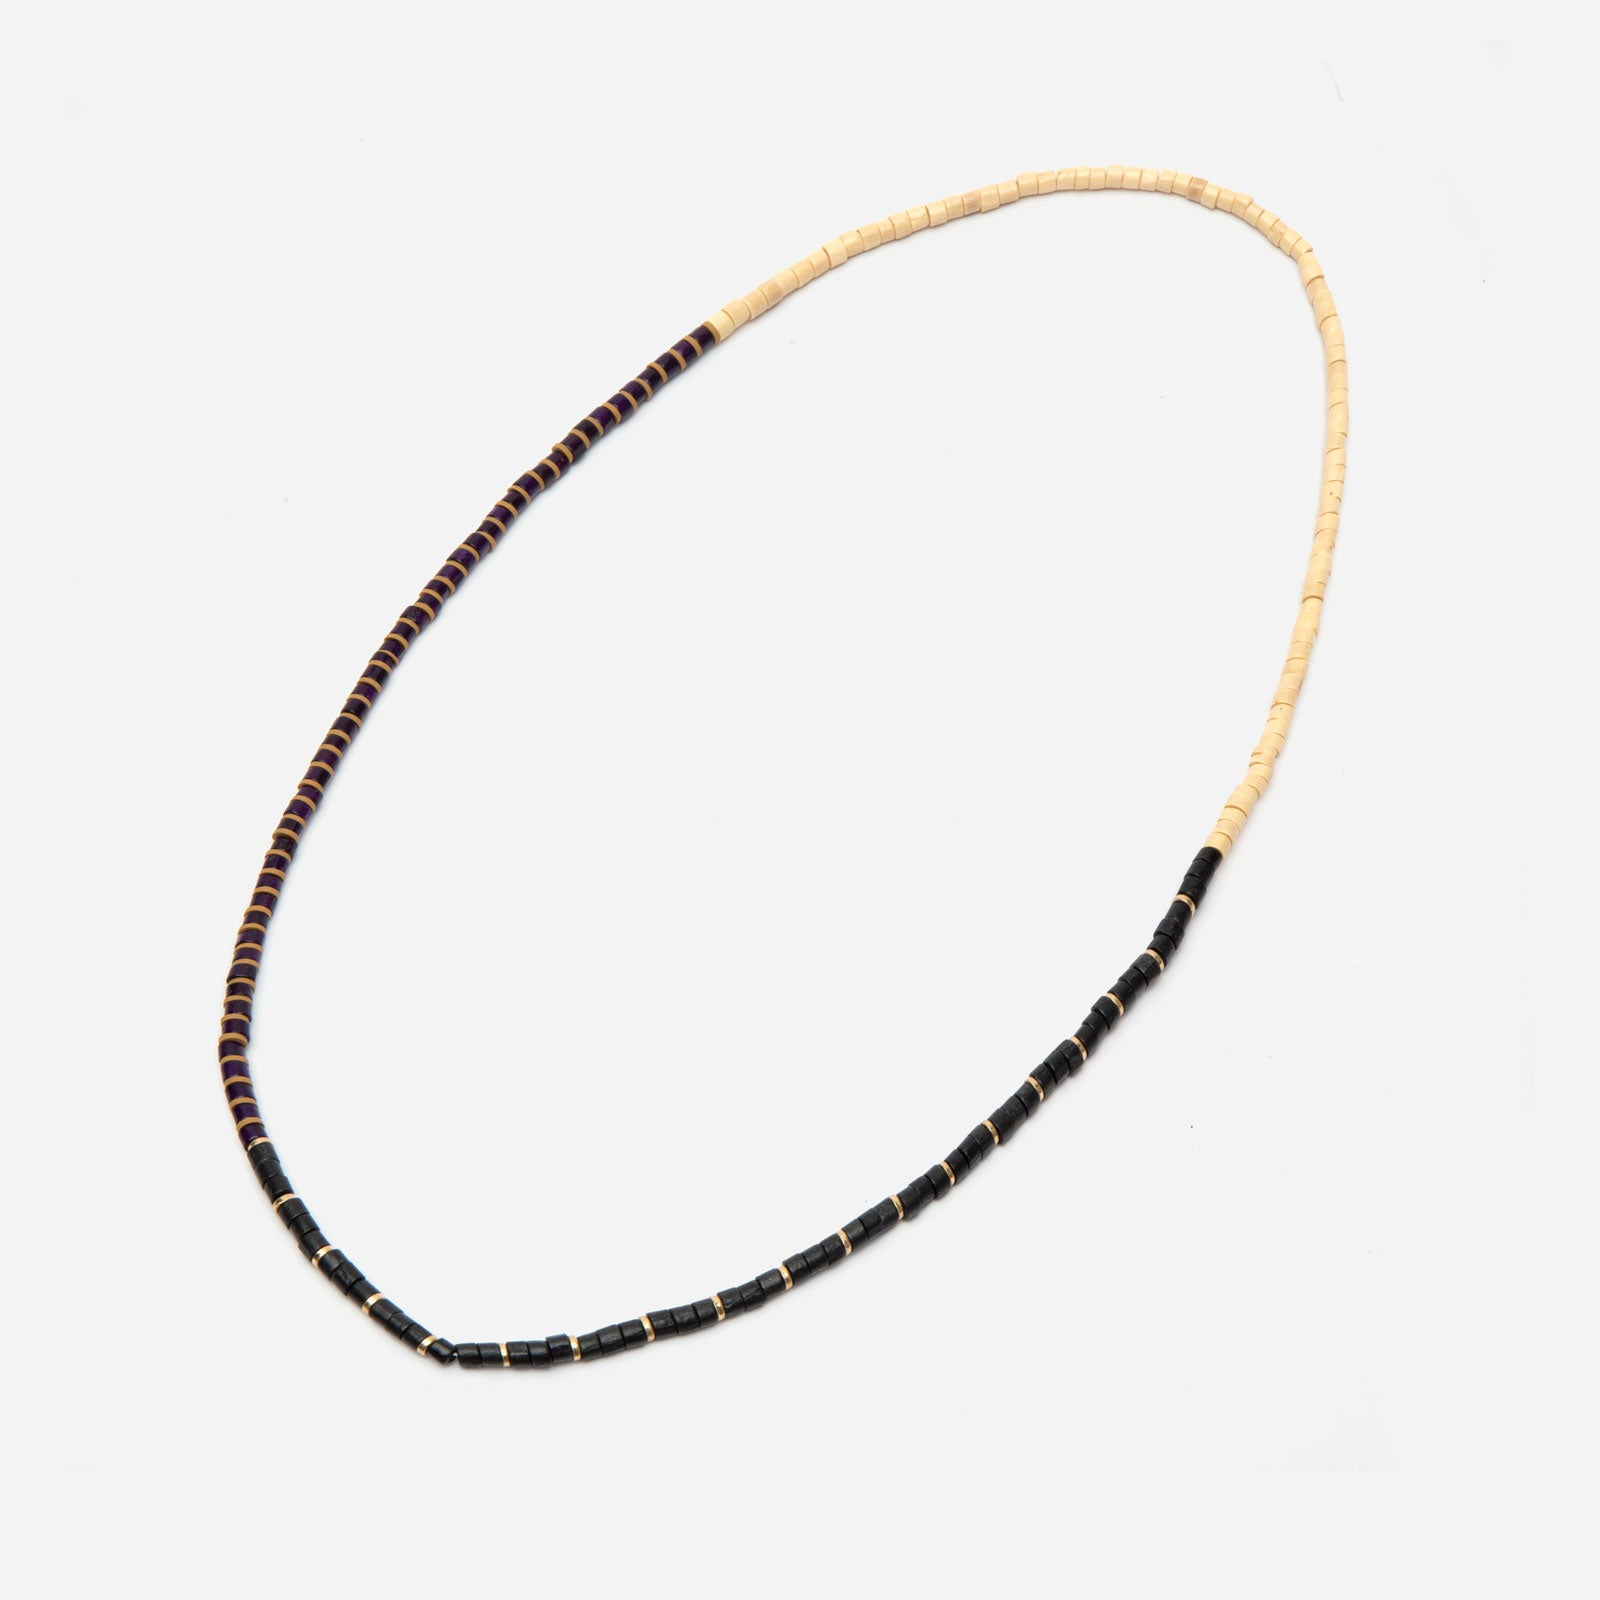 Picnic Bead Necklace Black Oyster